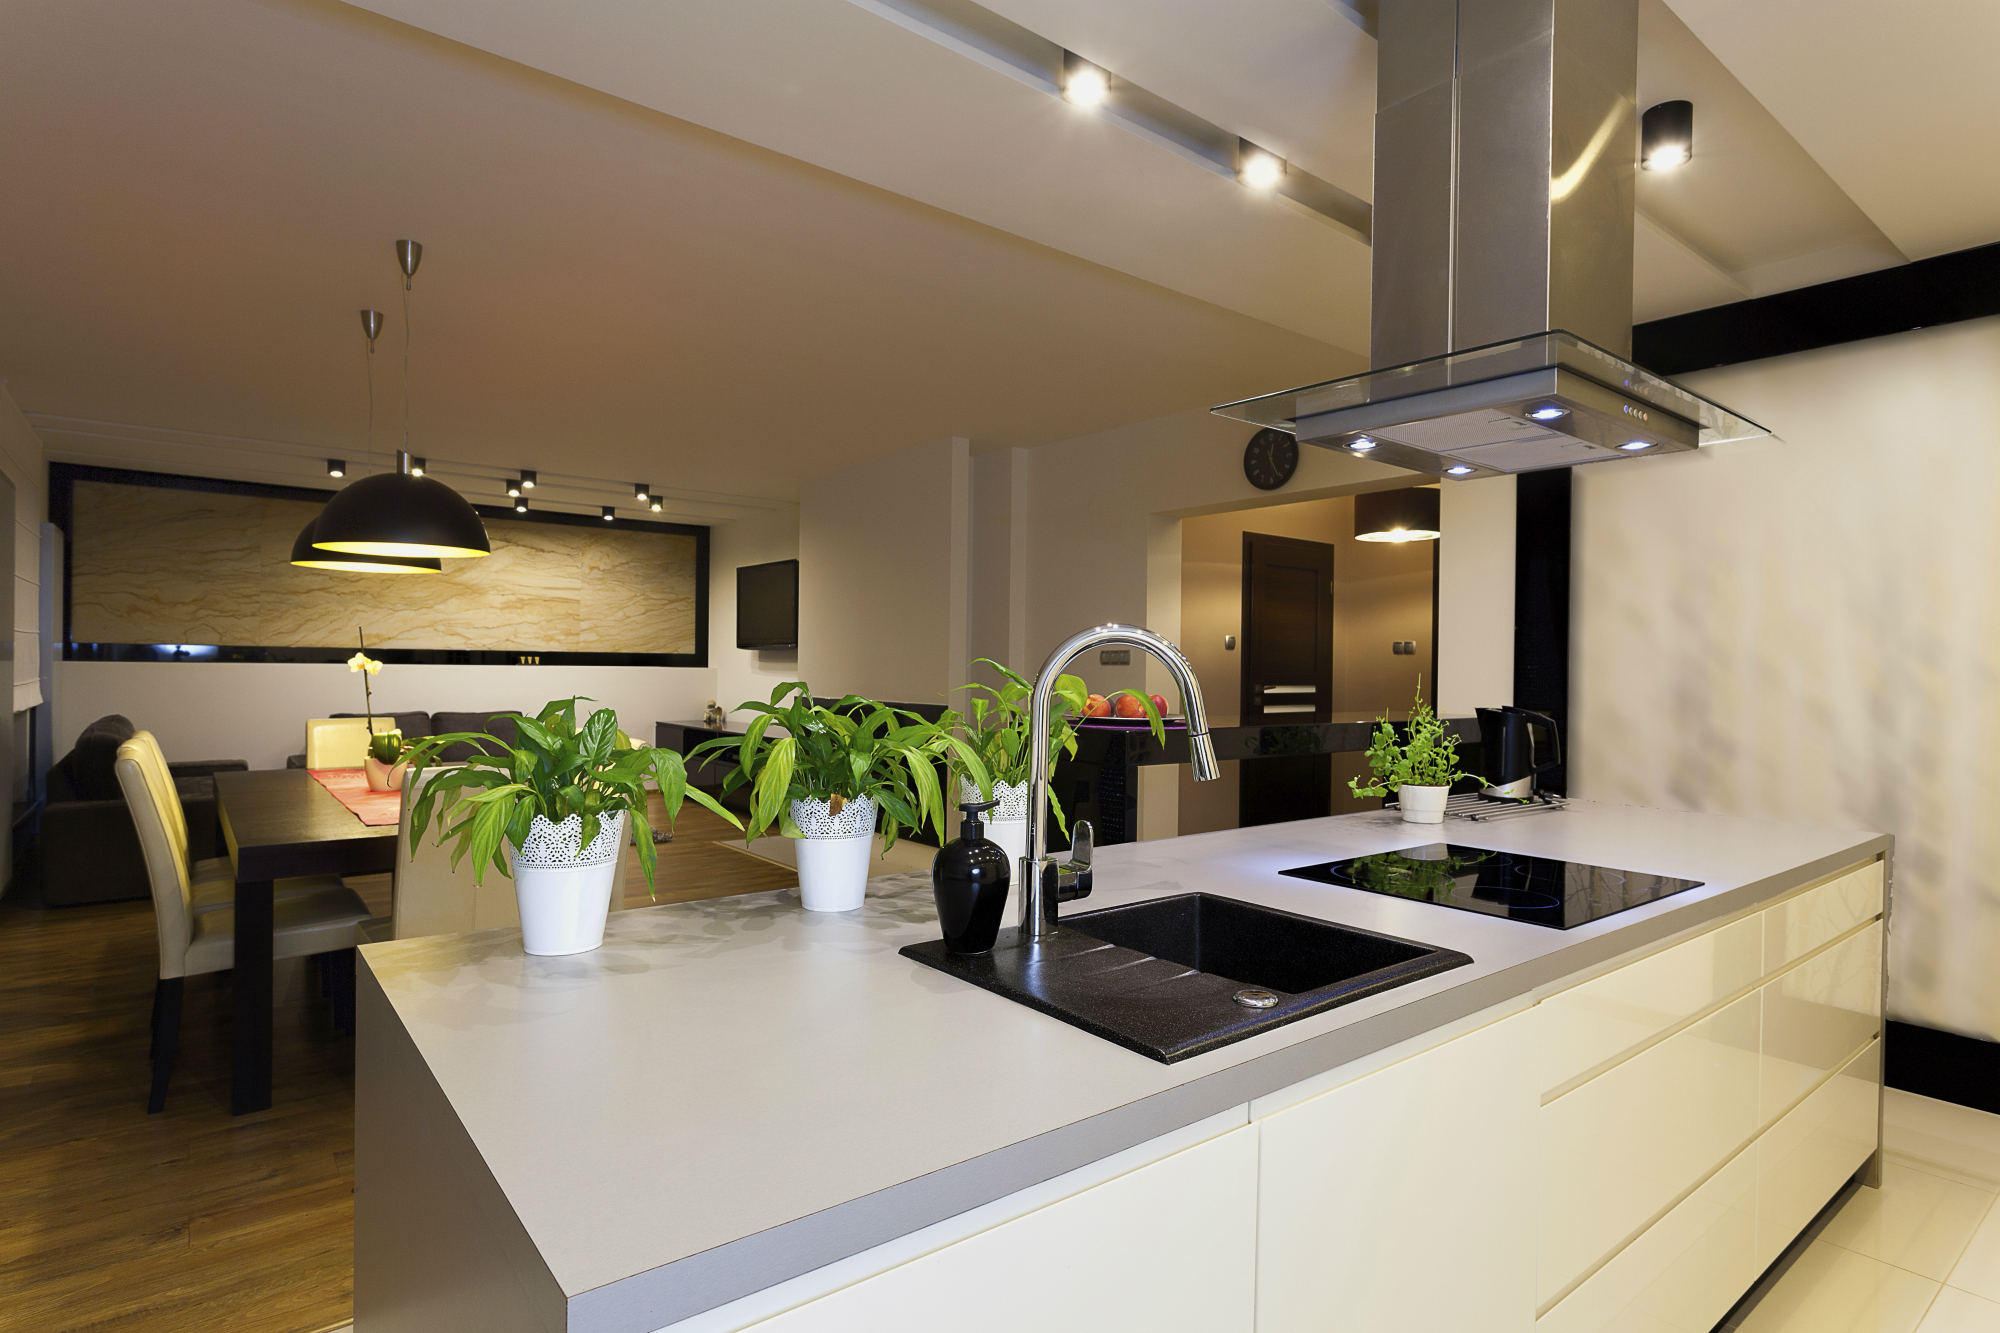 Cool white vs warm white led lights - Cool White Light In Kitchen